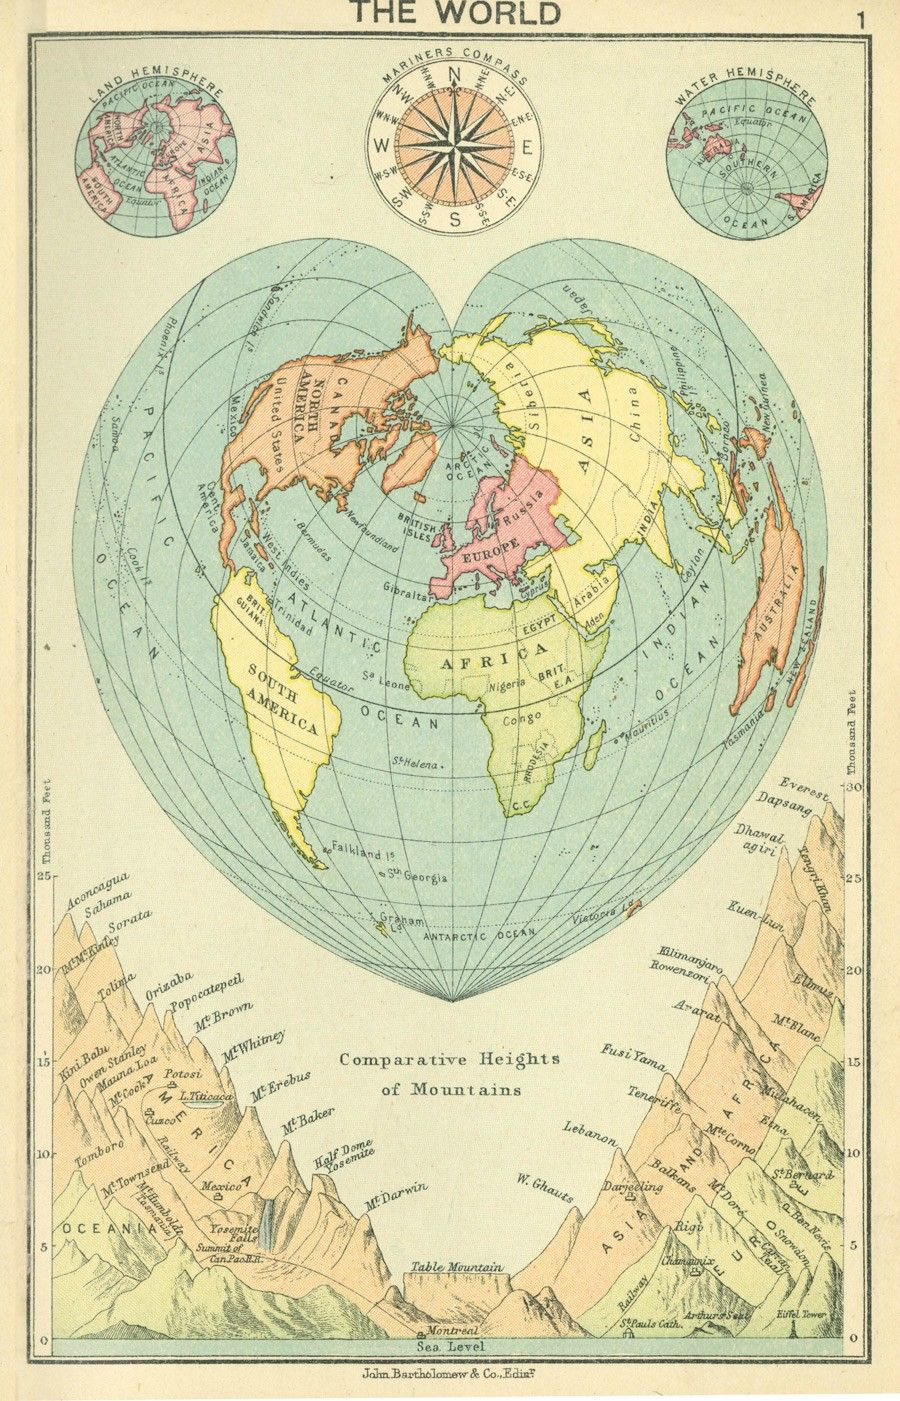 Stabius-Werner globe. | Projections | World globe map, Geography map on world trade center projects, world equator, world maps accurate not eurocentric, world thematic maps, world globes, world maps shown in different ways, world landforms, world war 1 projects, robinson projection and mercator projections, tangent or secant projections, world robinson projection, world tropic of cancer, world coordinate system, world maps continental drift future, world time zones, world typography,